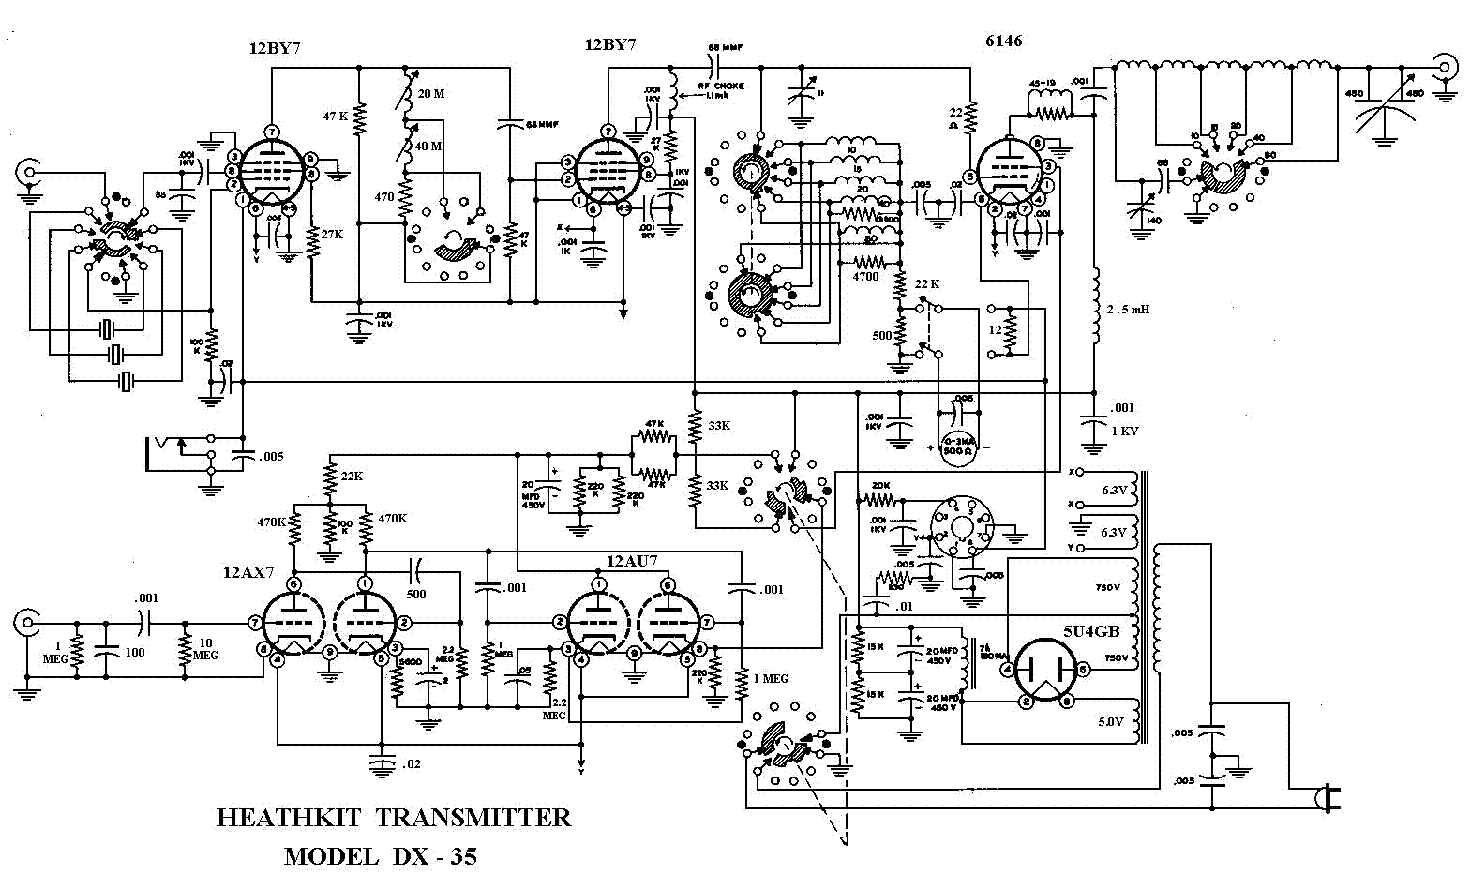 HEATHKIT DX-35 TRANSMITTER SM Service Manual download